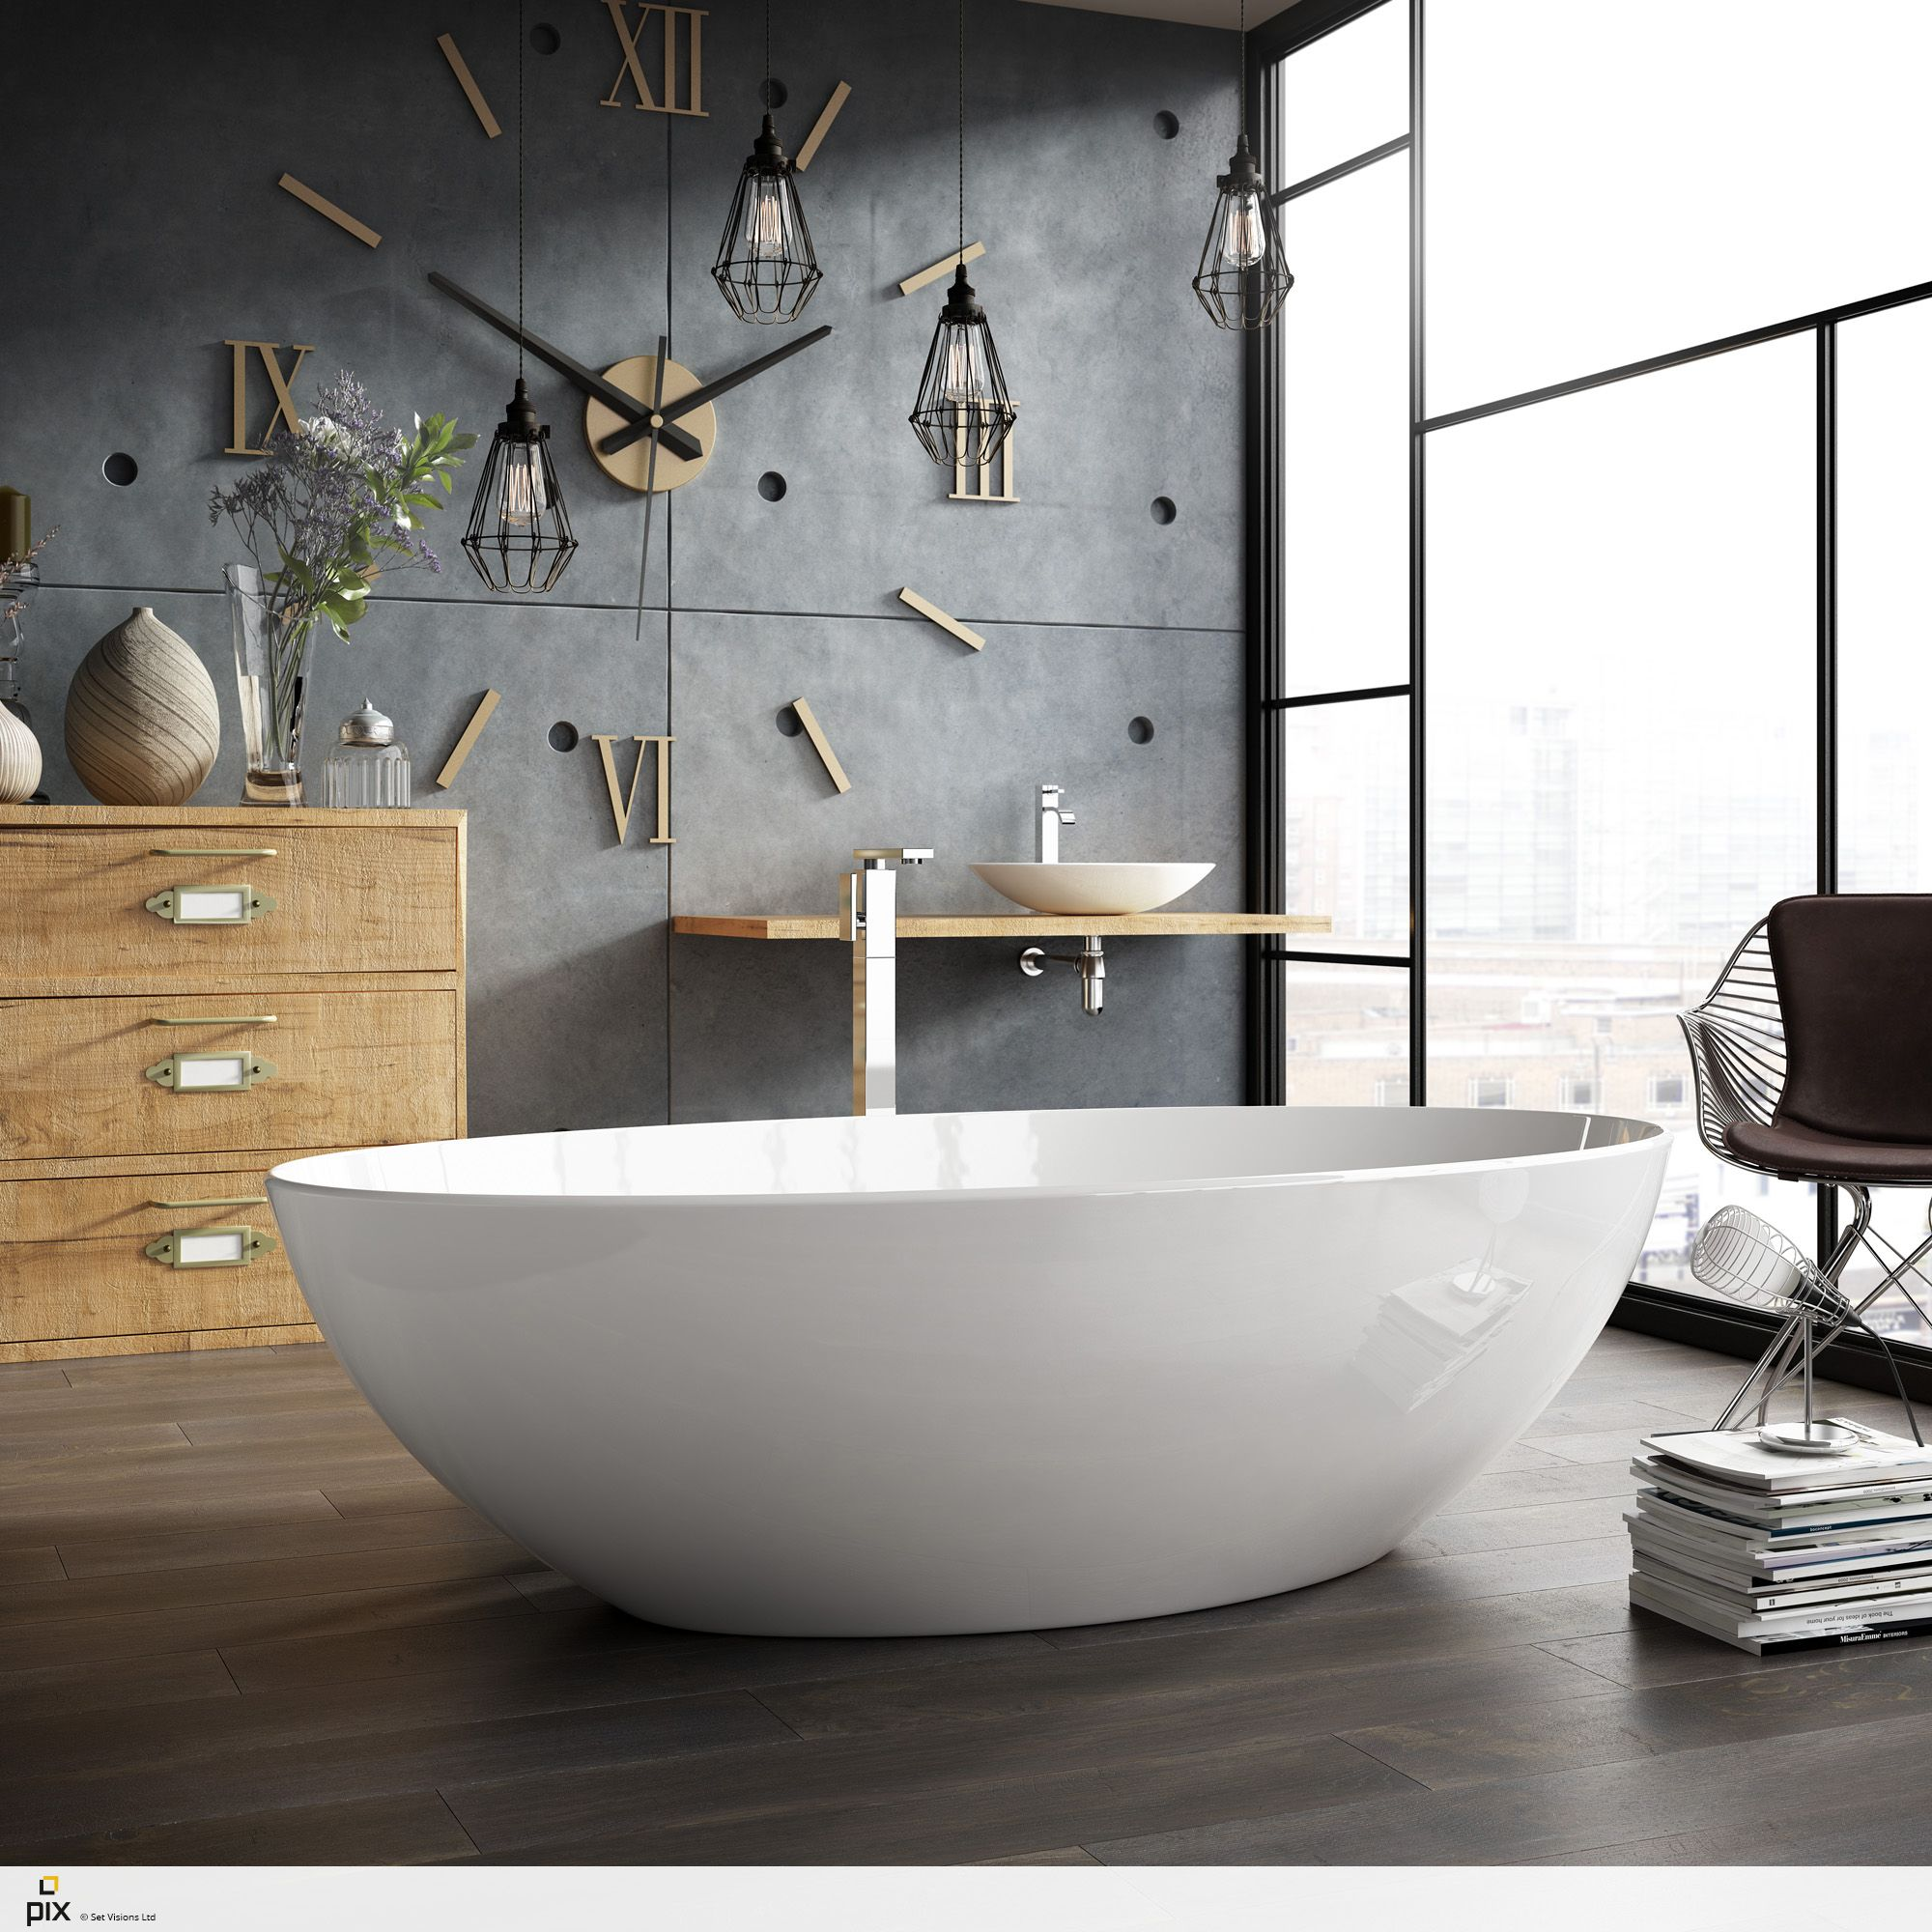 Free Standing Bathtub Set Within A Converted Warehouse Apartment, Urban City